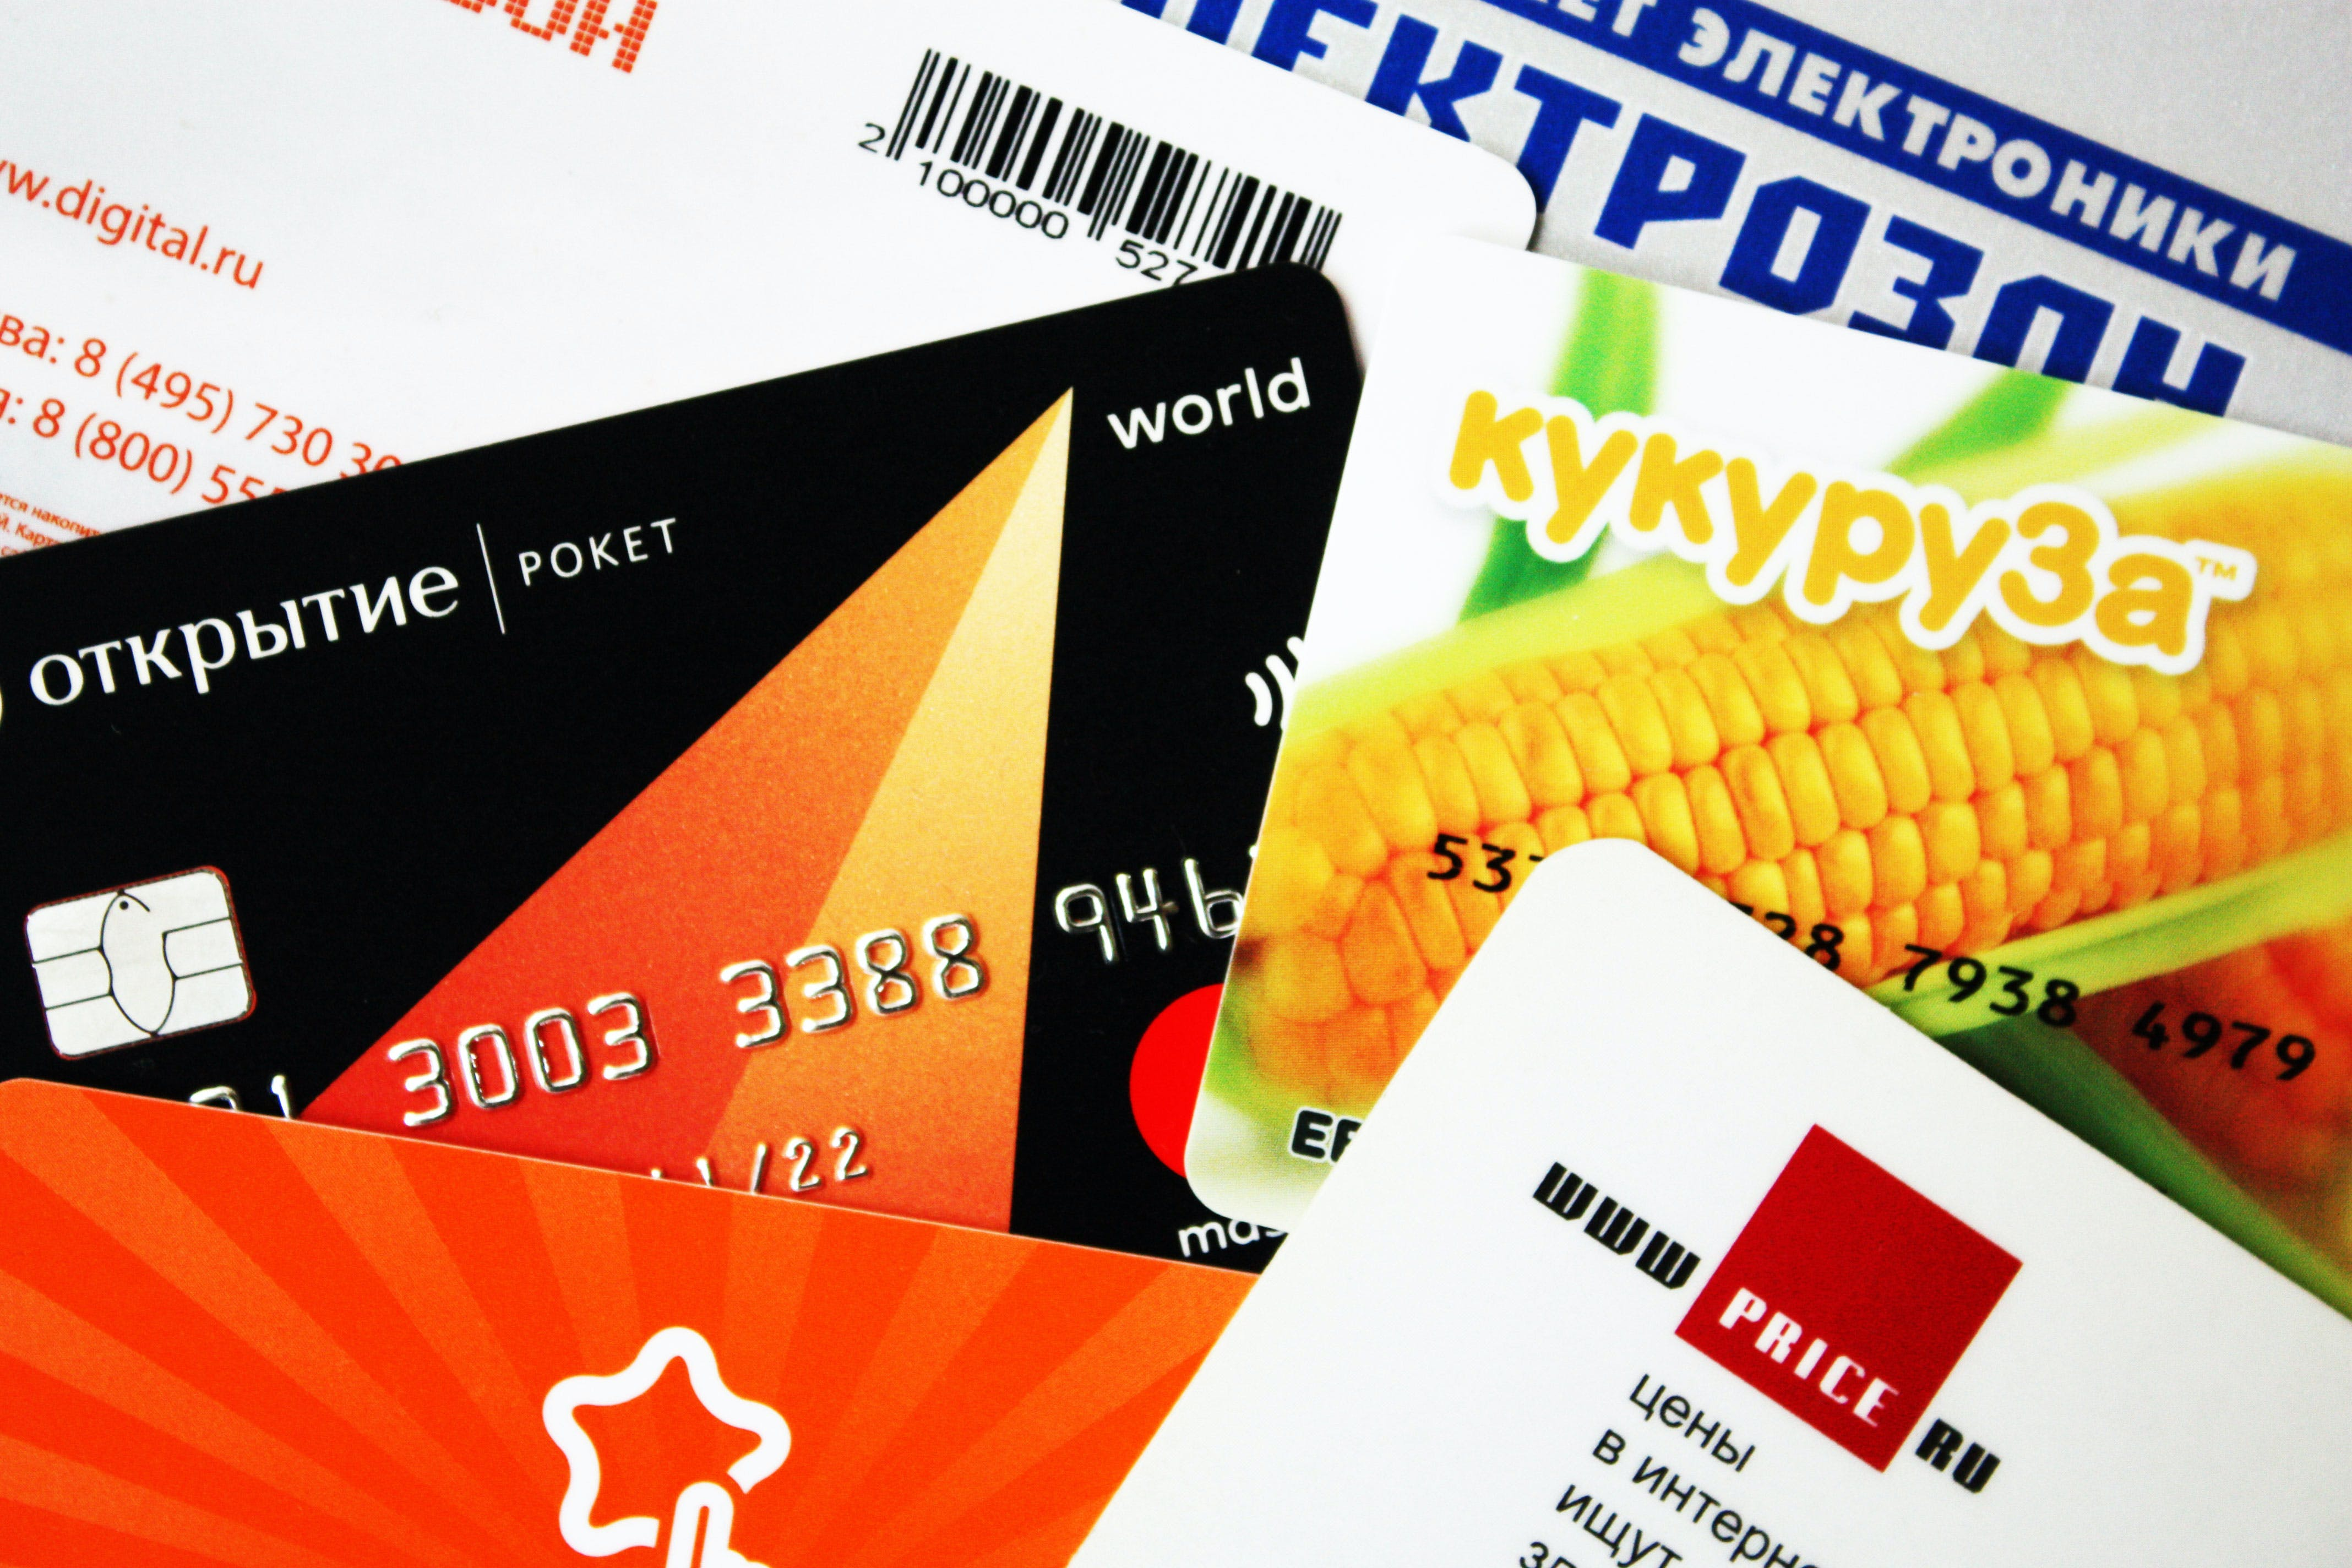 Assorted Credit and Gift Cards